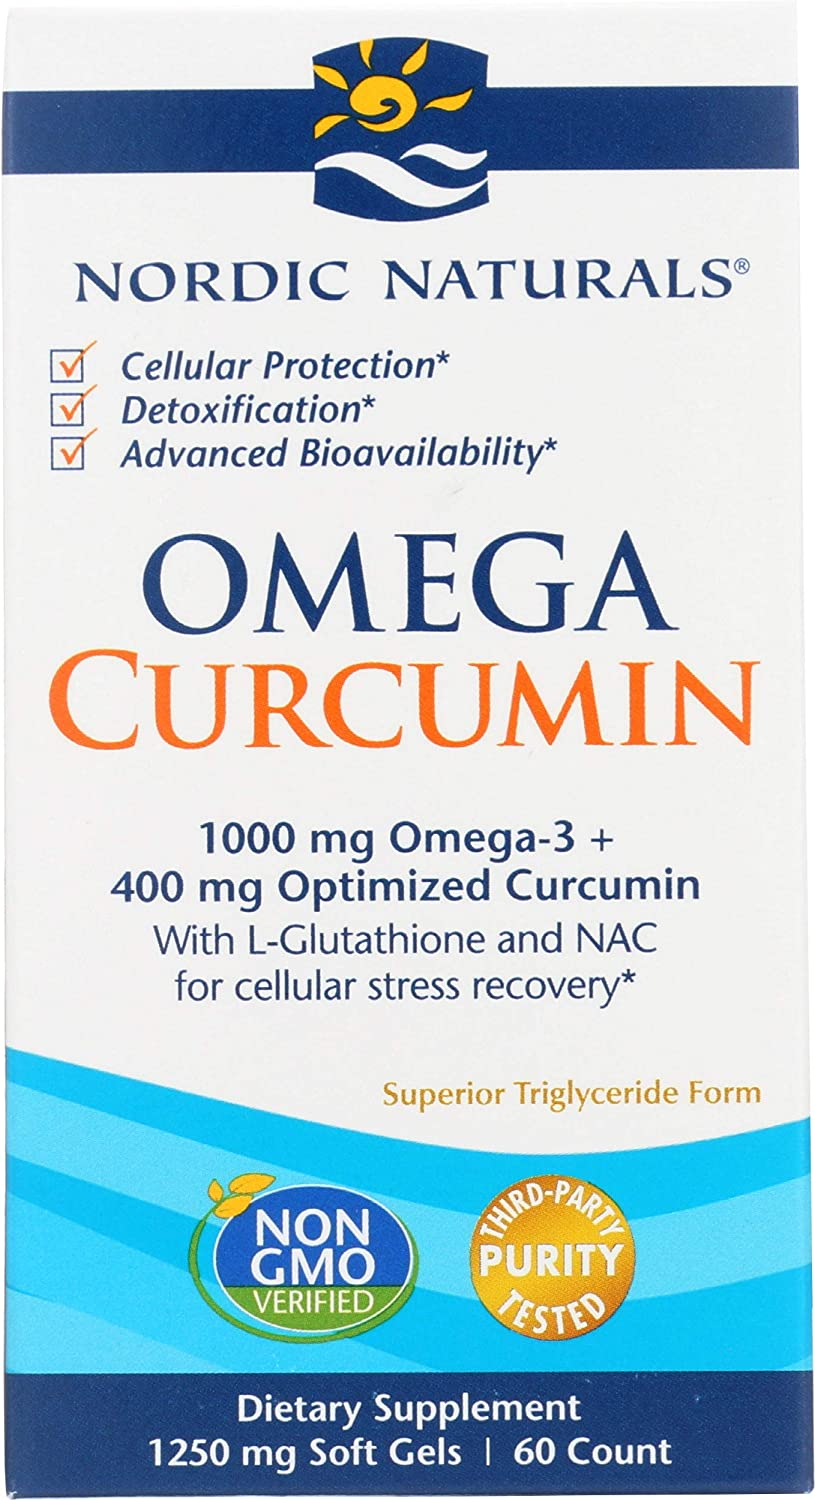 Nordic Naturals Omega Curcumin, Lemon - 60 Soft Gels - 1000 mg Omega-3 + 400 mg Optimized Curcumin - Combats Cellular Stress - Contains L-Glutathione & NAC - Non-GMO - 30 Servings